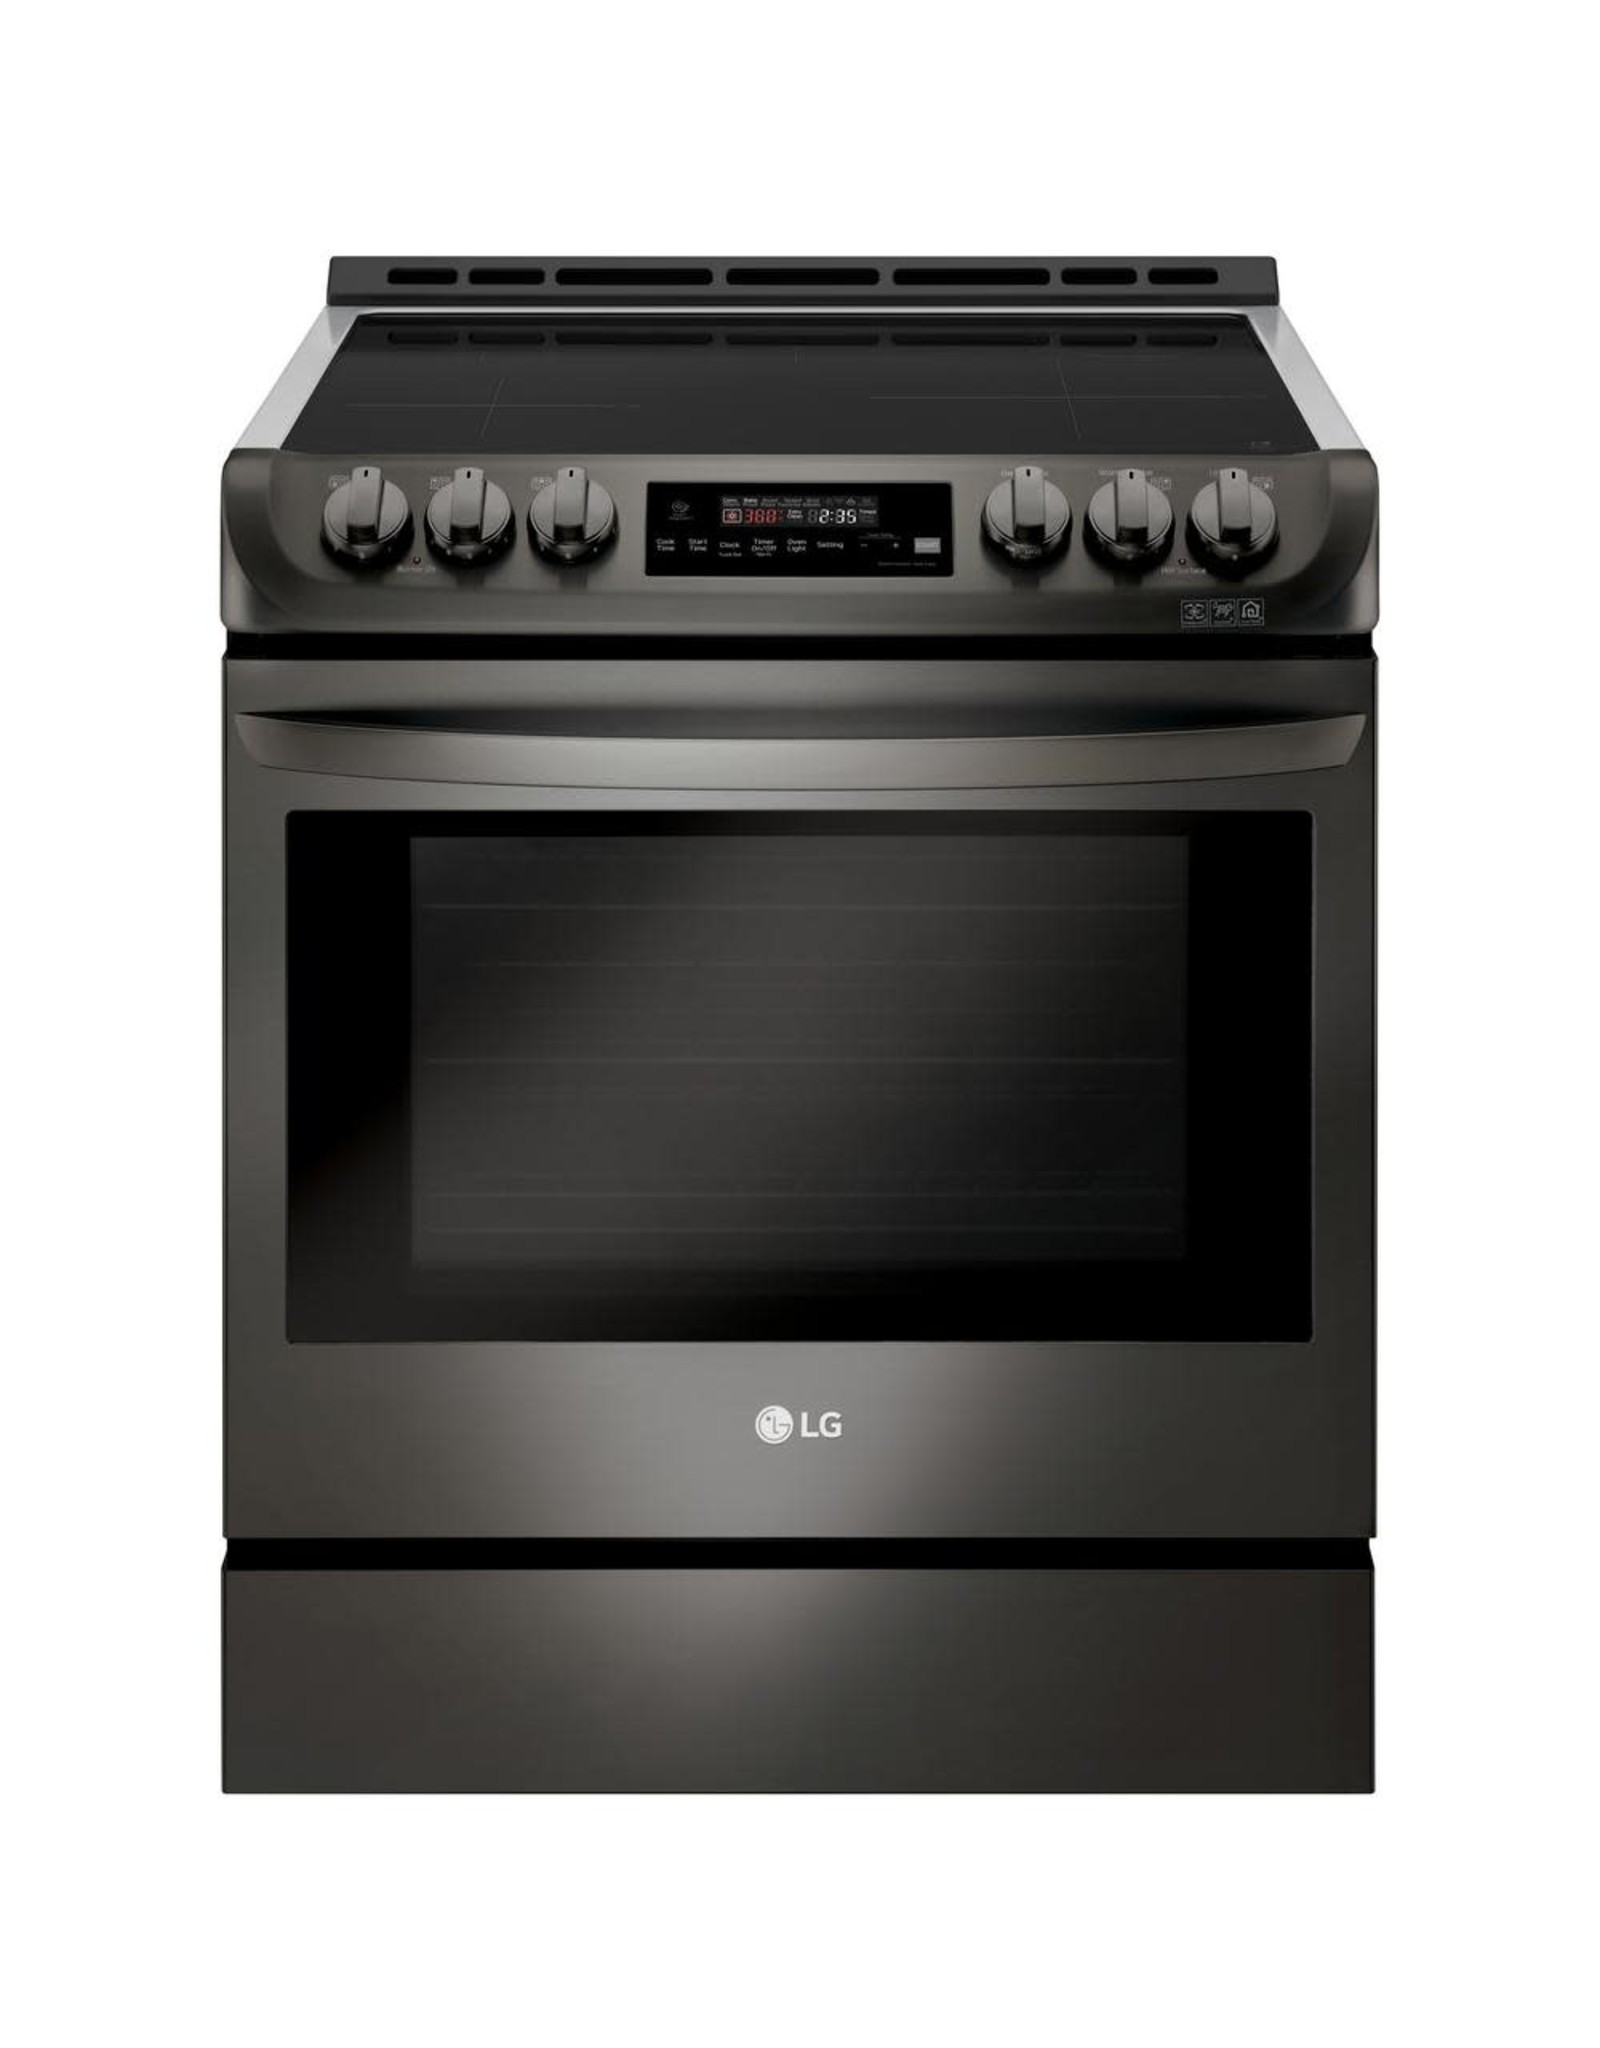 LG Electronics LSE4616BD 6.3 cu. ft. 30 in. Slide-In Electric Smart Range with ProBake Convection, Induction, Self Clean in Black Stainless Steel